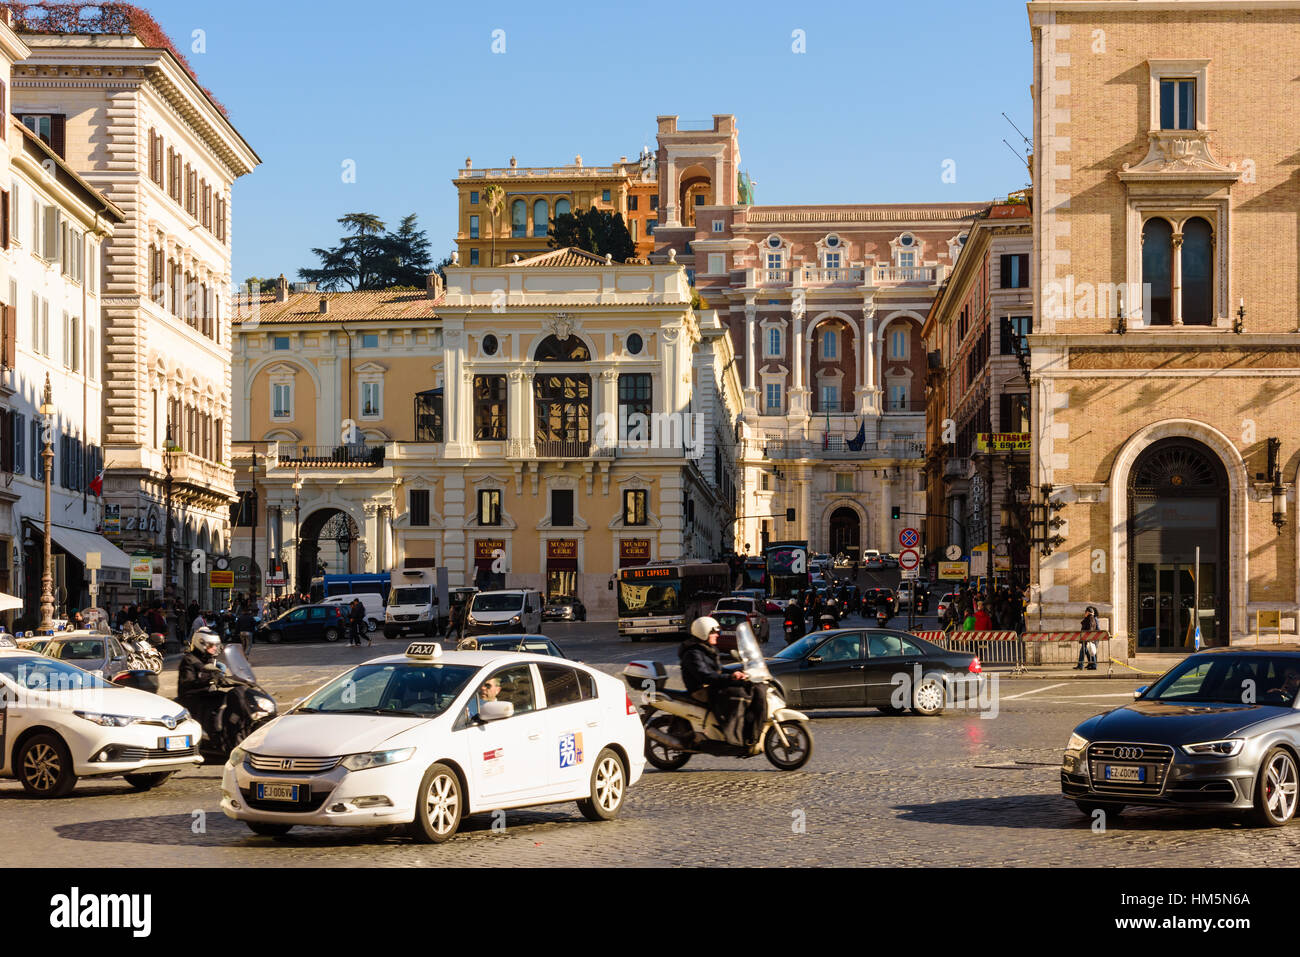 traffic can be seen crossing at an intersection on piazza venezia in rome italy - Stock Image